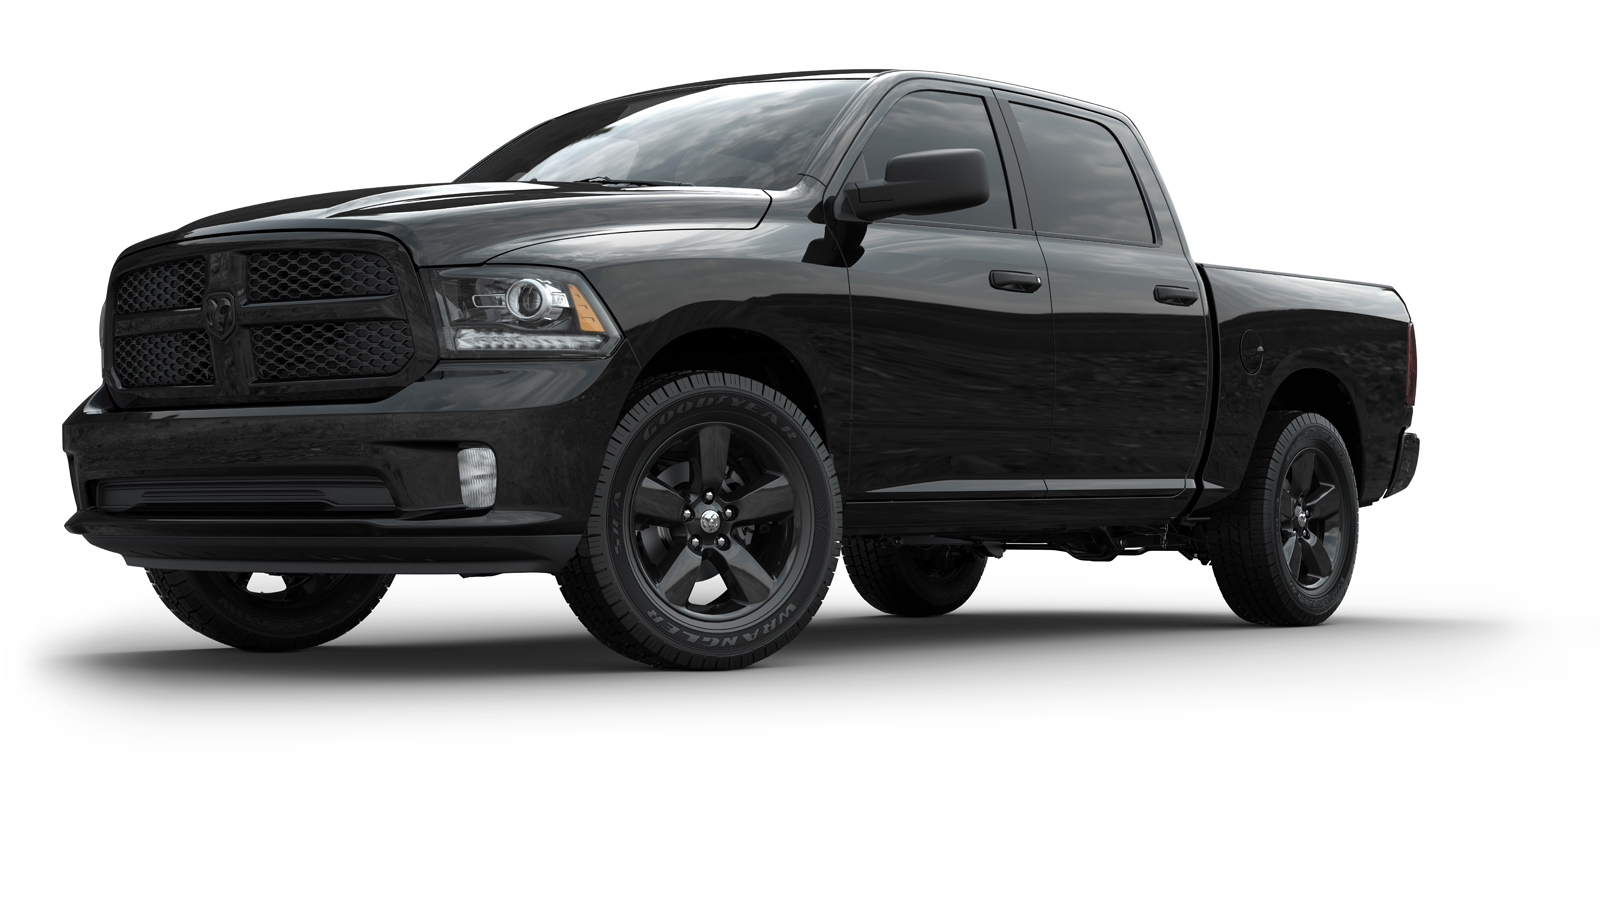 Black Dodge Ram >> 2014 Ram 1500 Black Express Edition Top Speed